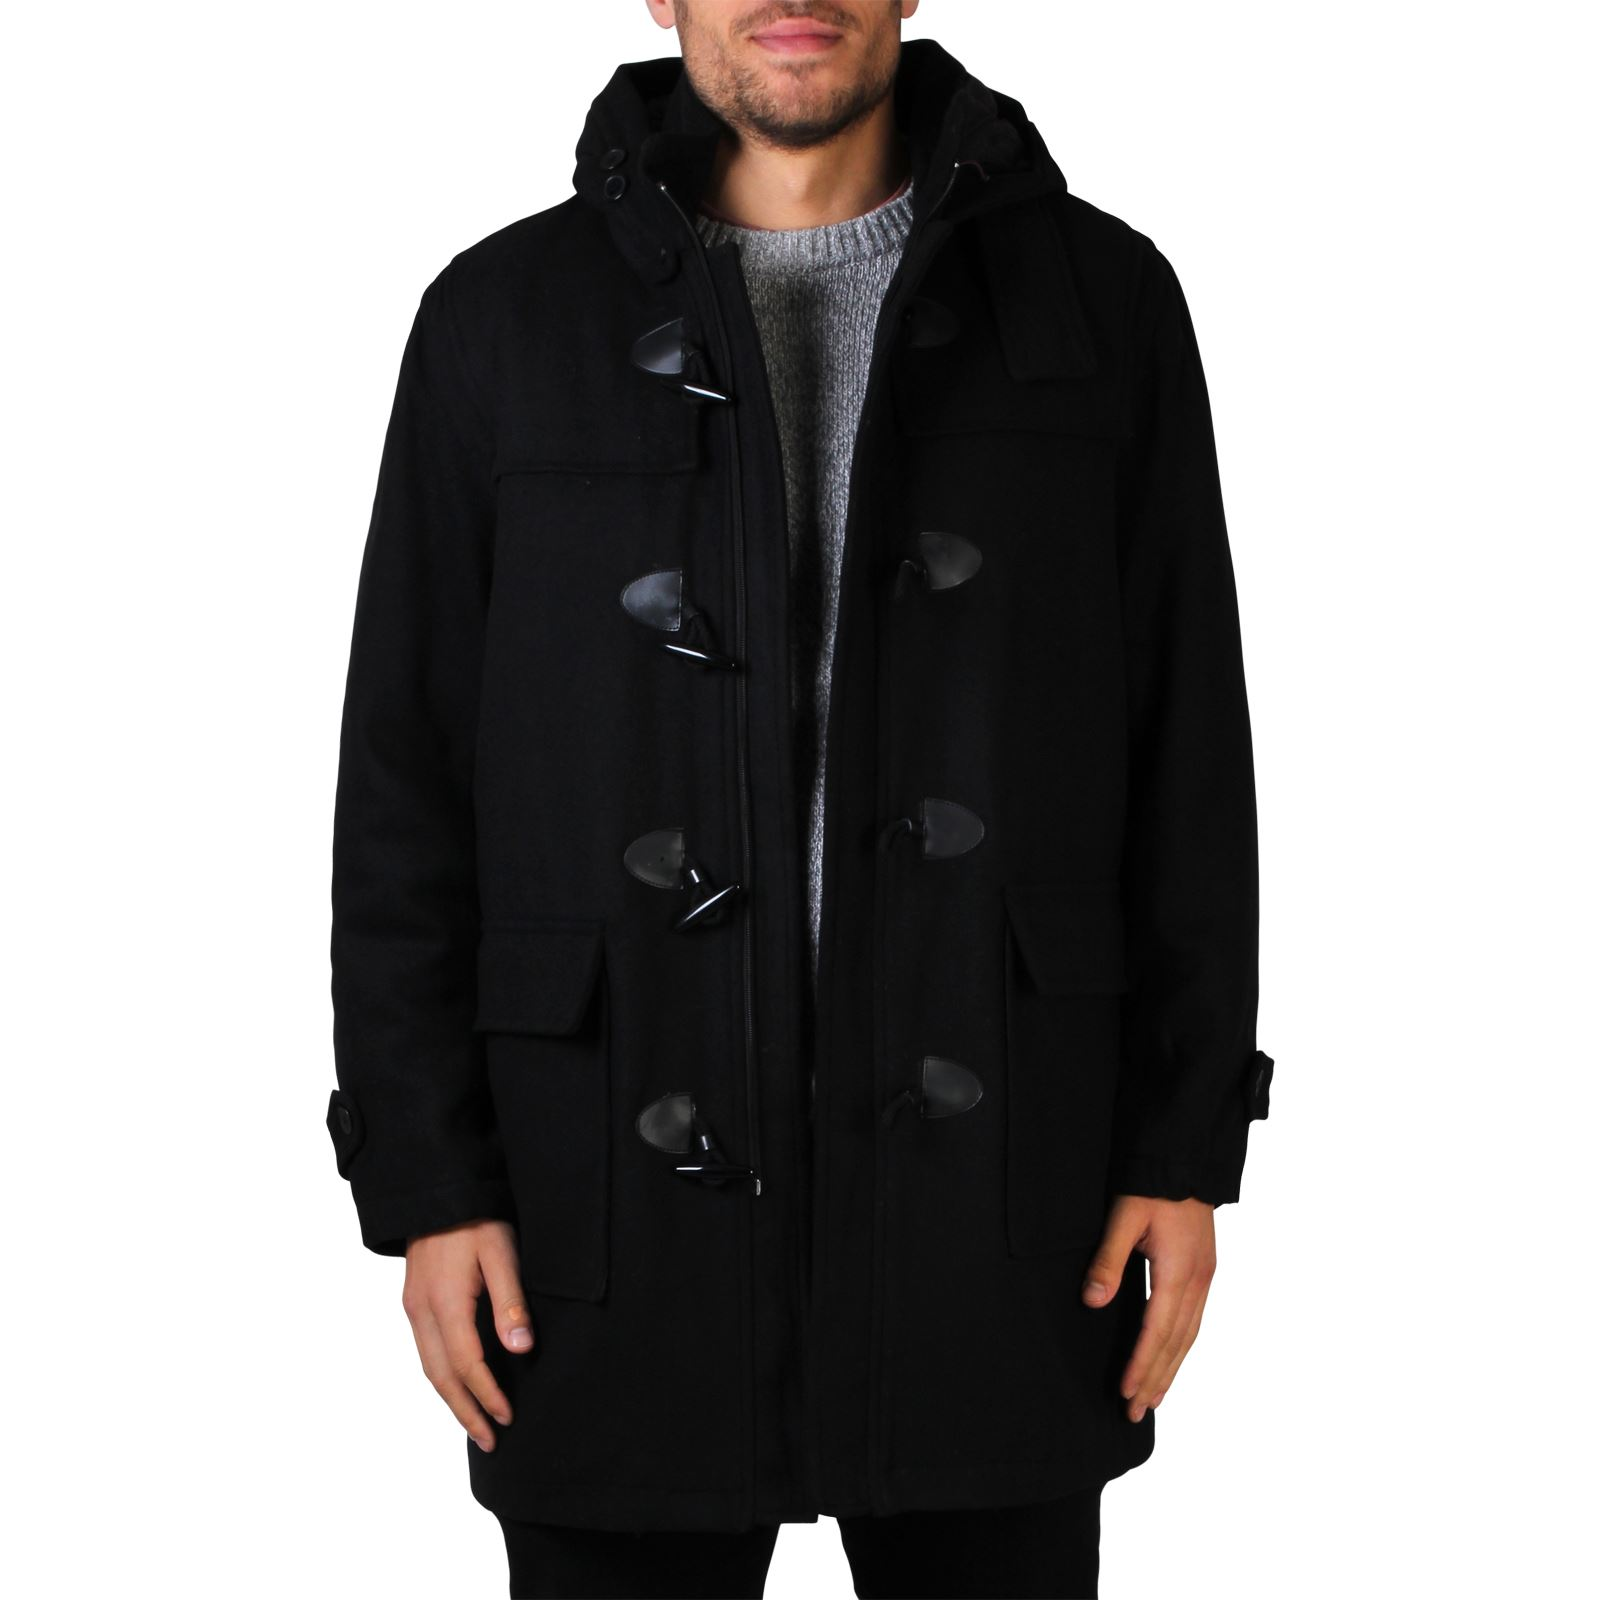 Watch video · Up your coat game with the men's duffle coat. Call it a toggle or a duffle, the coat of your duffle dreams is in our list of the 10 Best Men's Duffle Coats.